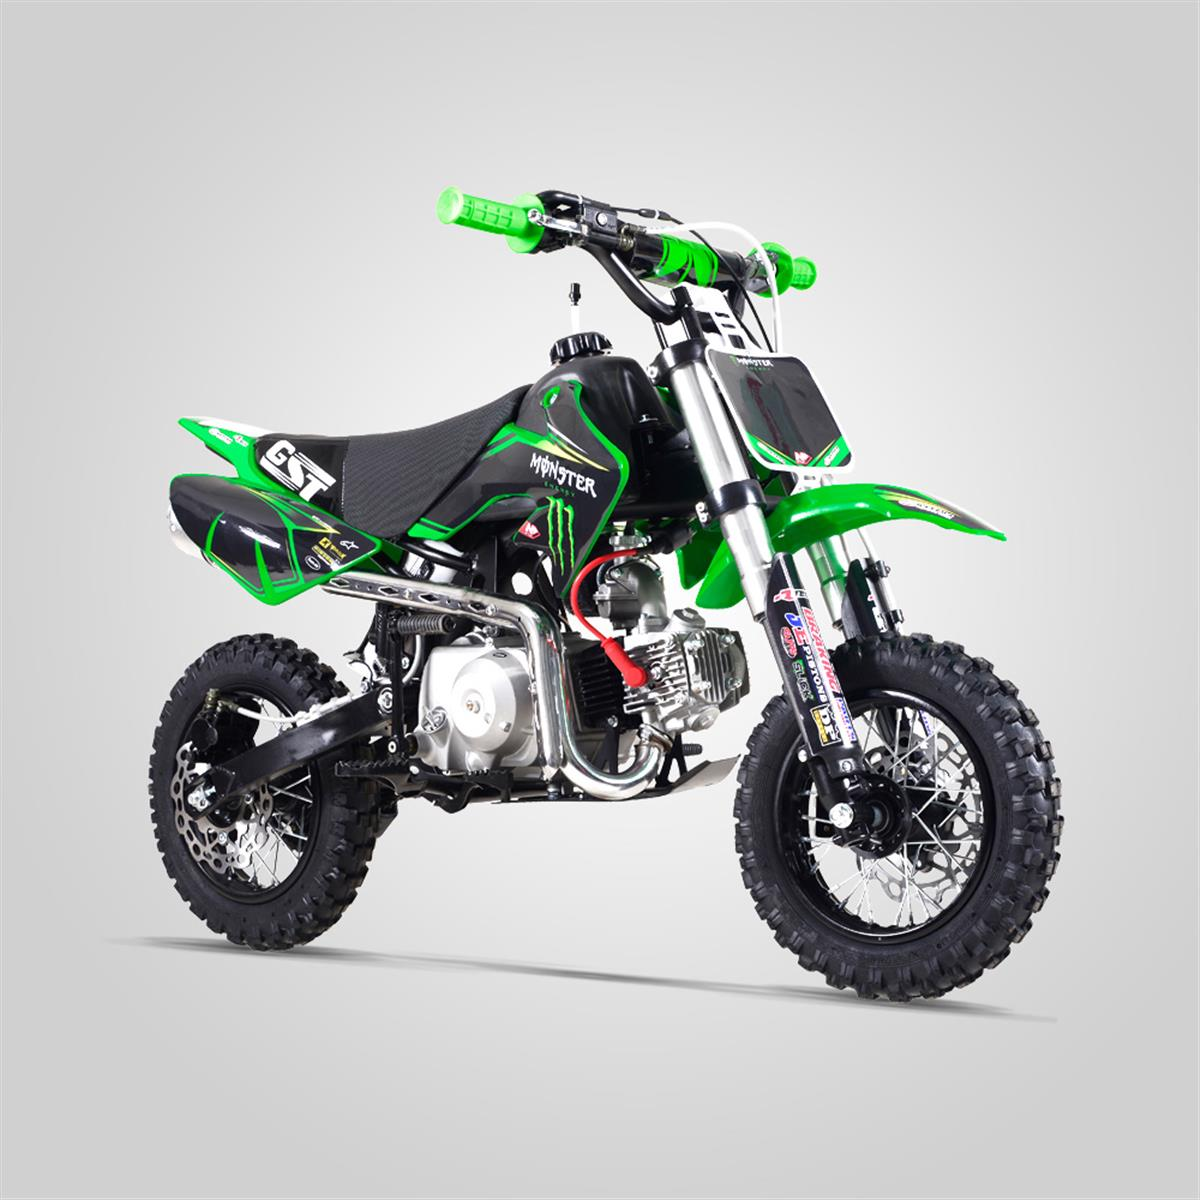 dirt bike gunshot 88cc gamme gunshot sur small mx smallmx dirt bike pit bike quads minimoto. Black Bedroom Furniture Sets. Home Design Ideas